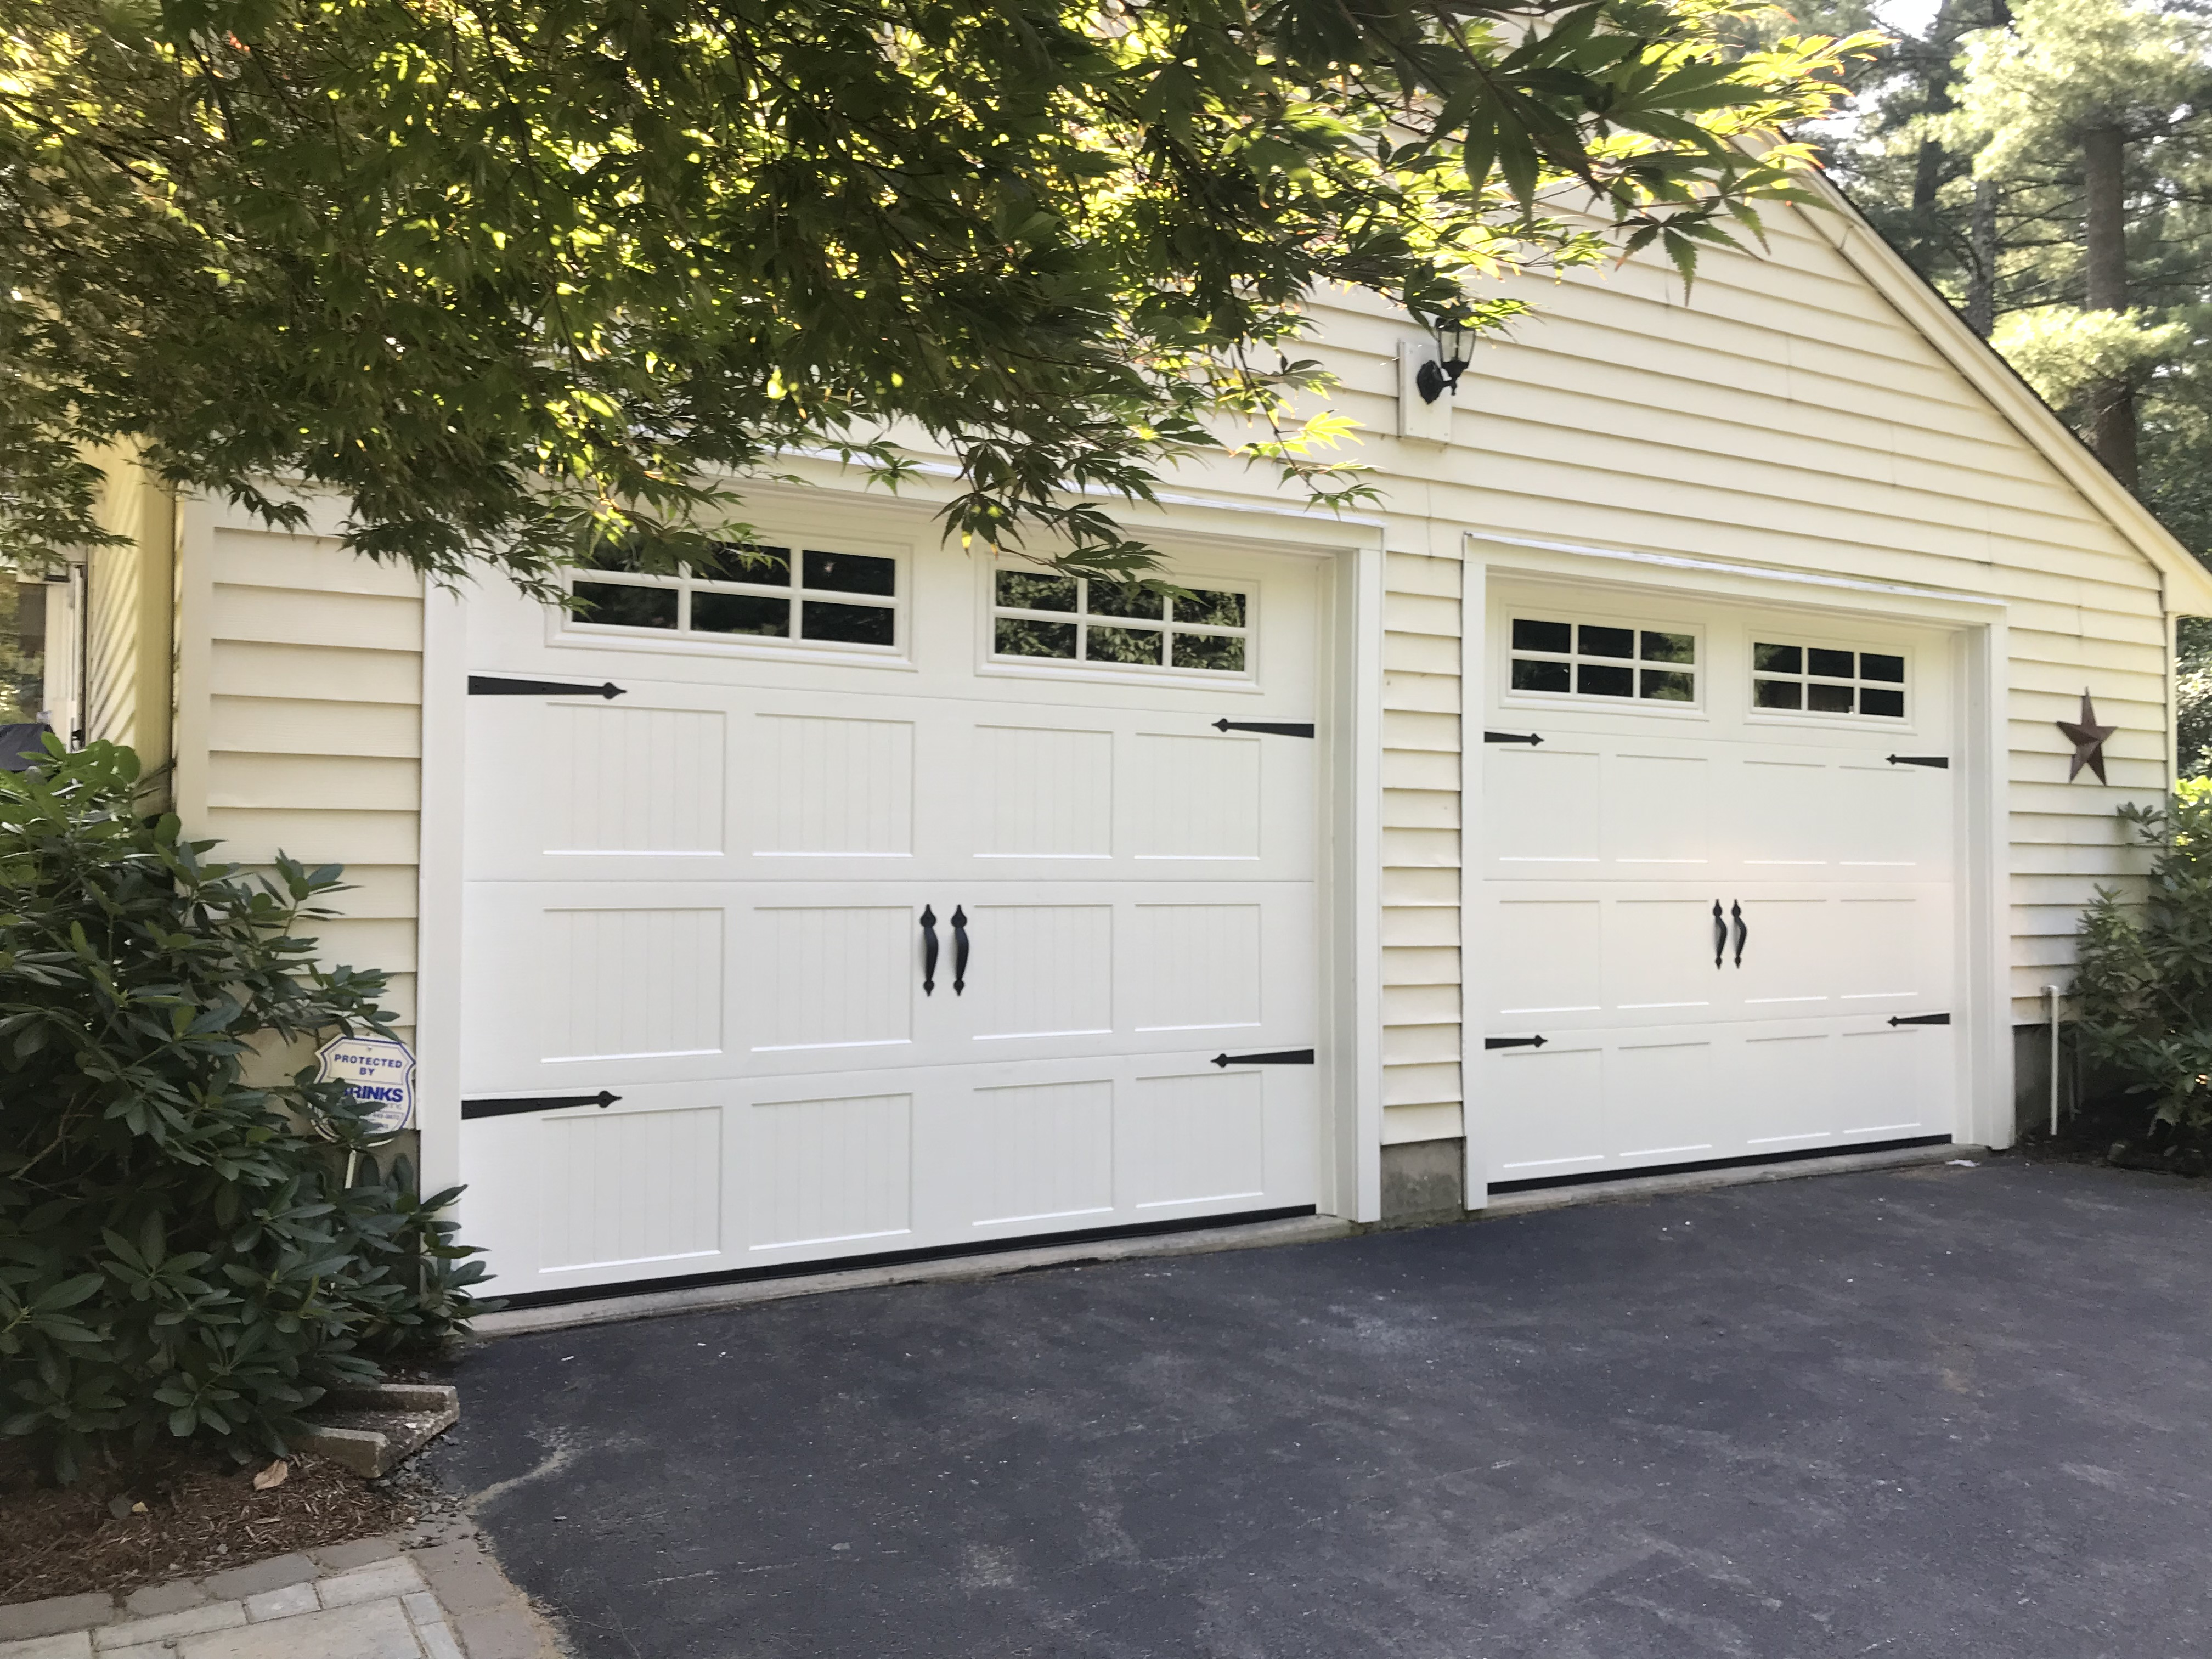 We will bring everything we need to get your garage door repair done right the first time.